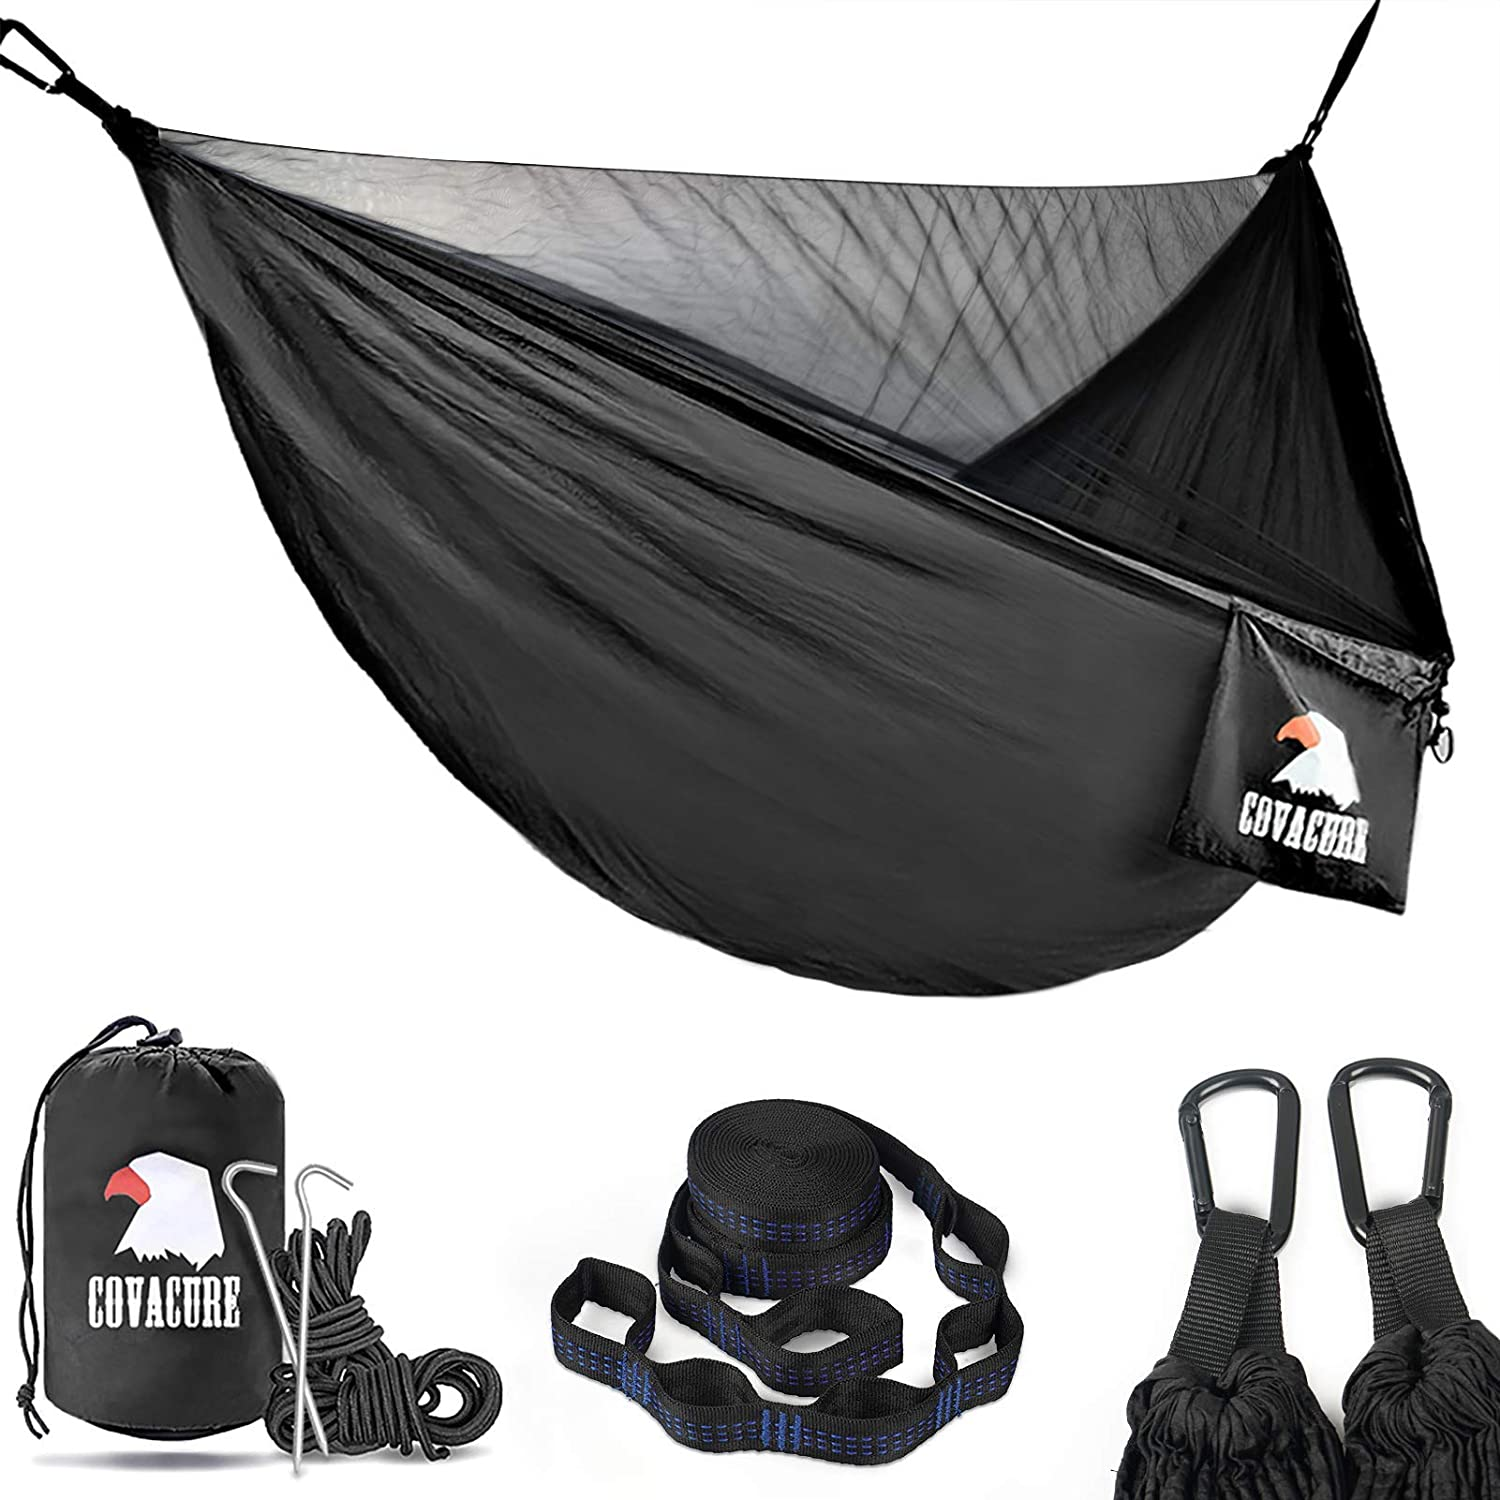 Covacure Camping Hammock with Net